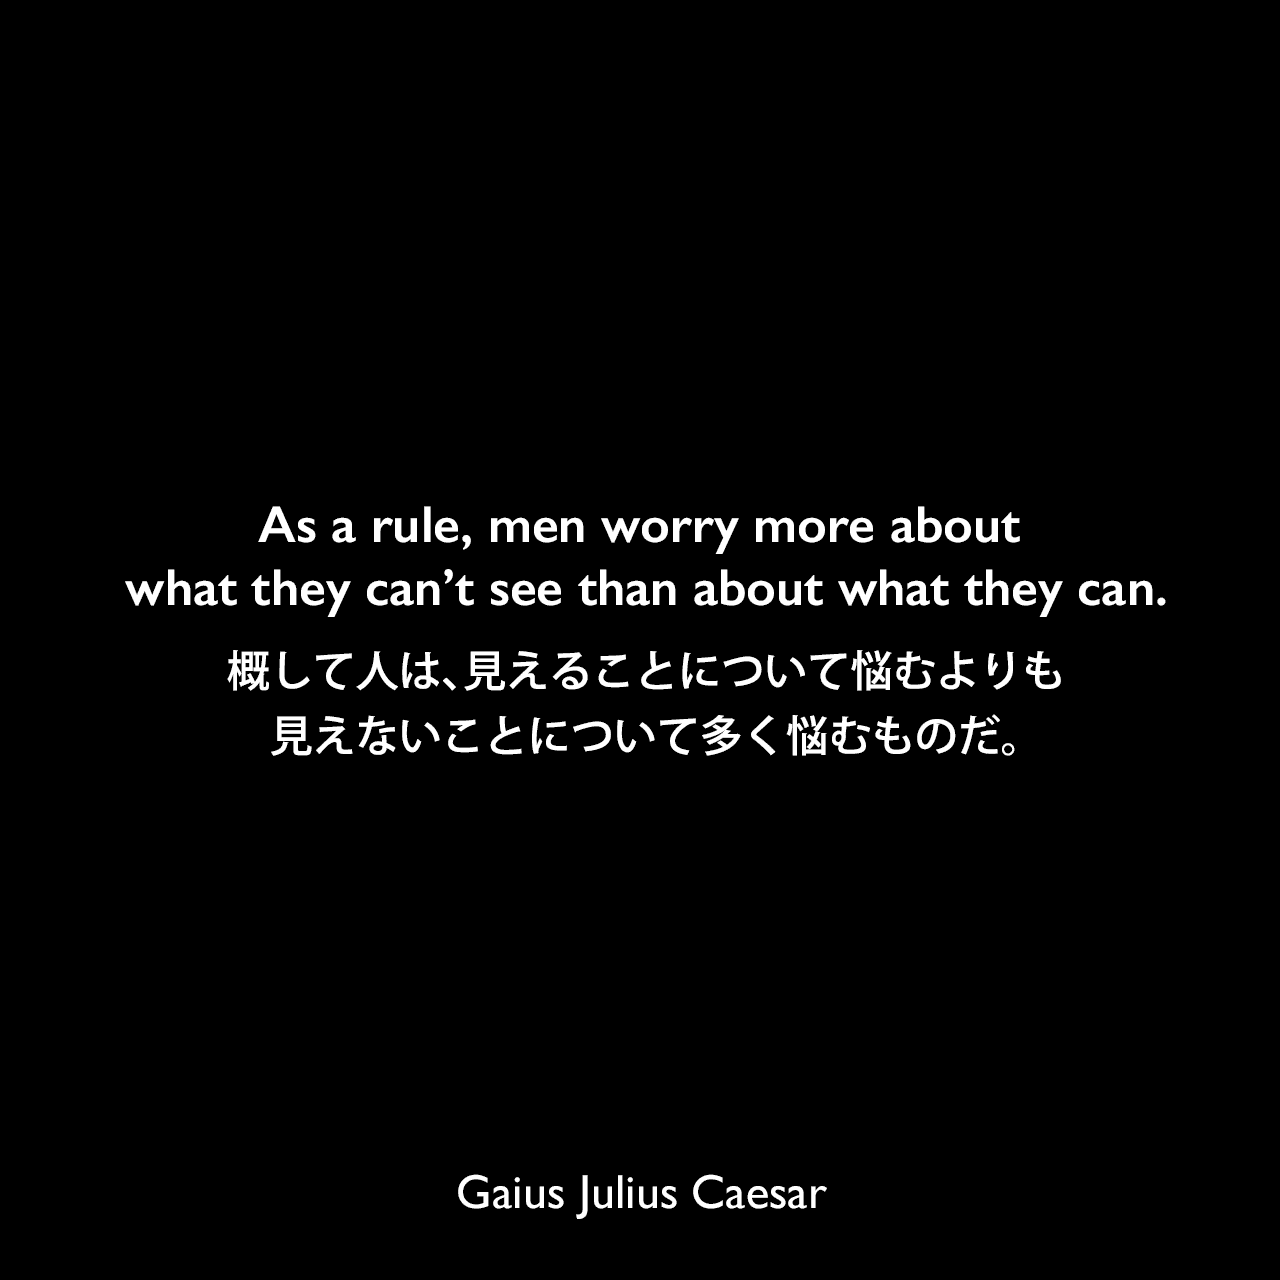 As a rule, men worry more about what they can't see than about what they can.概して人は、見えることについて悩むよりも、見えないことについて多く悩むものだ。Gaius Julius Caesar